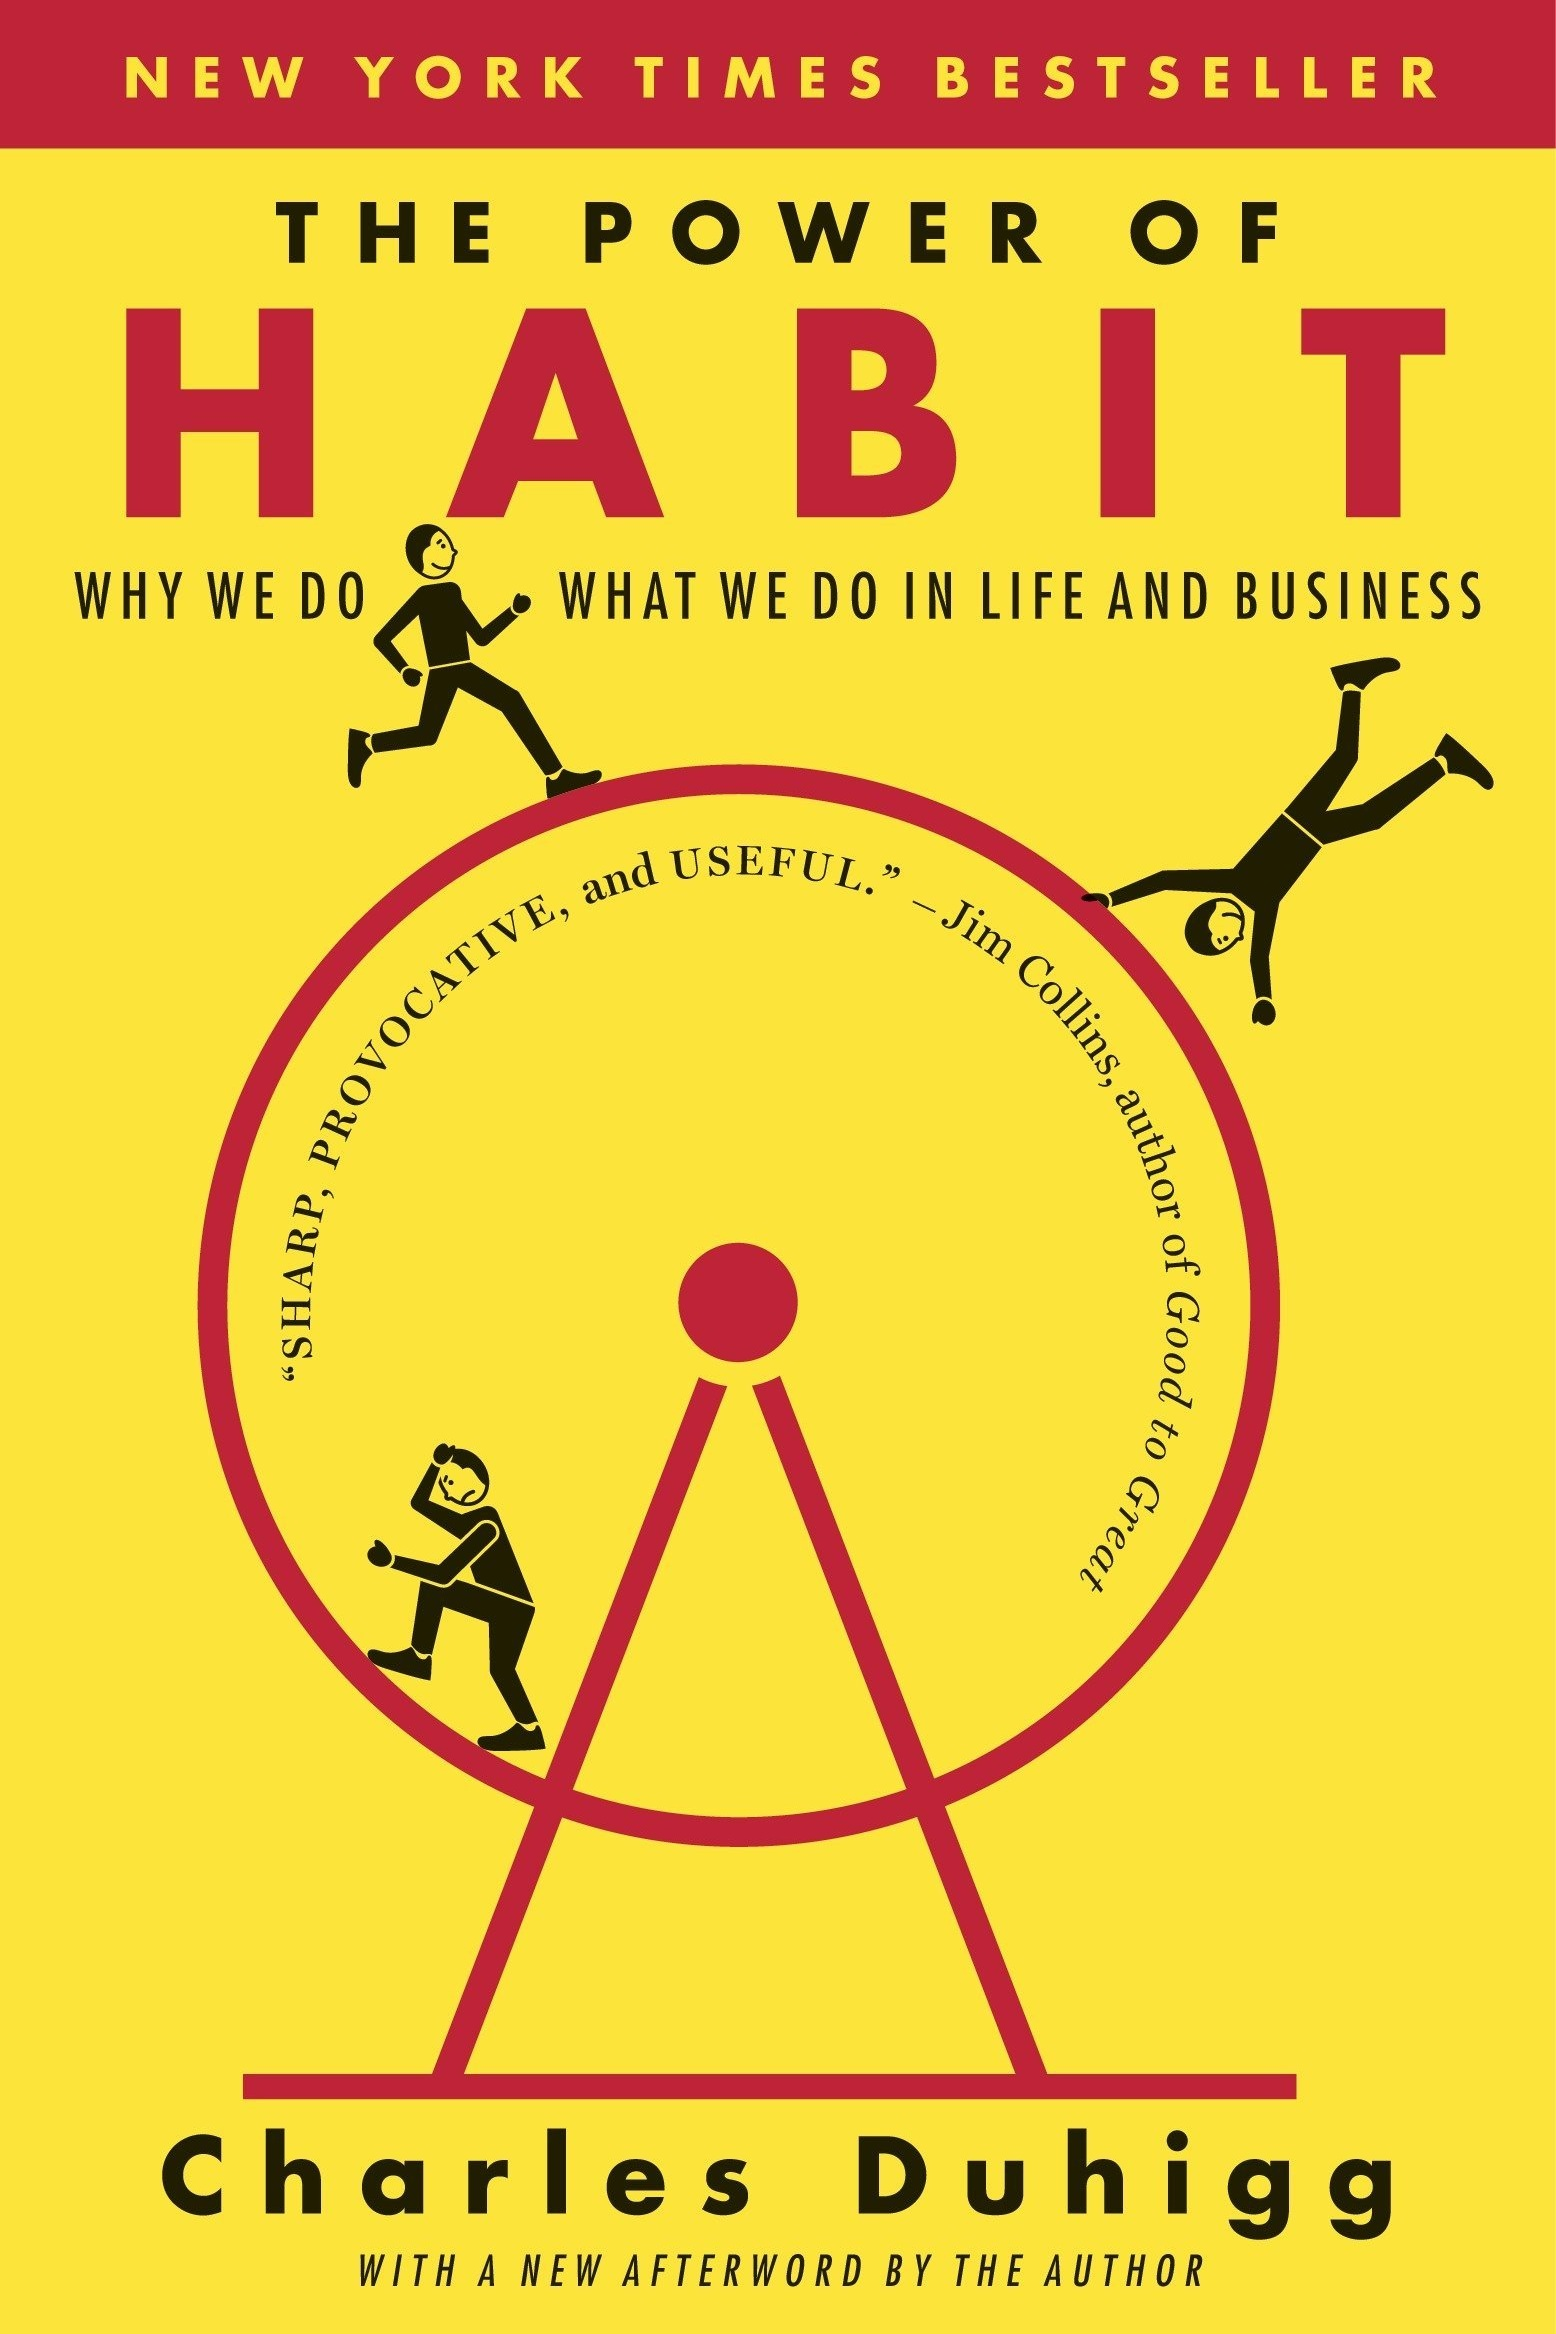 the power of habit charles duhigg.jpg